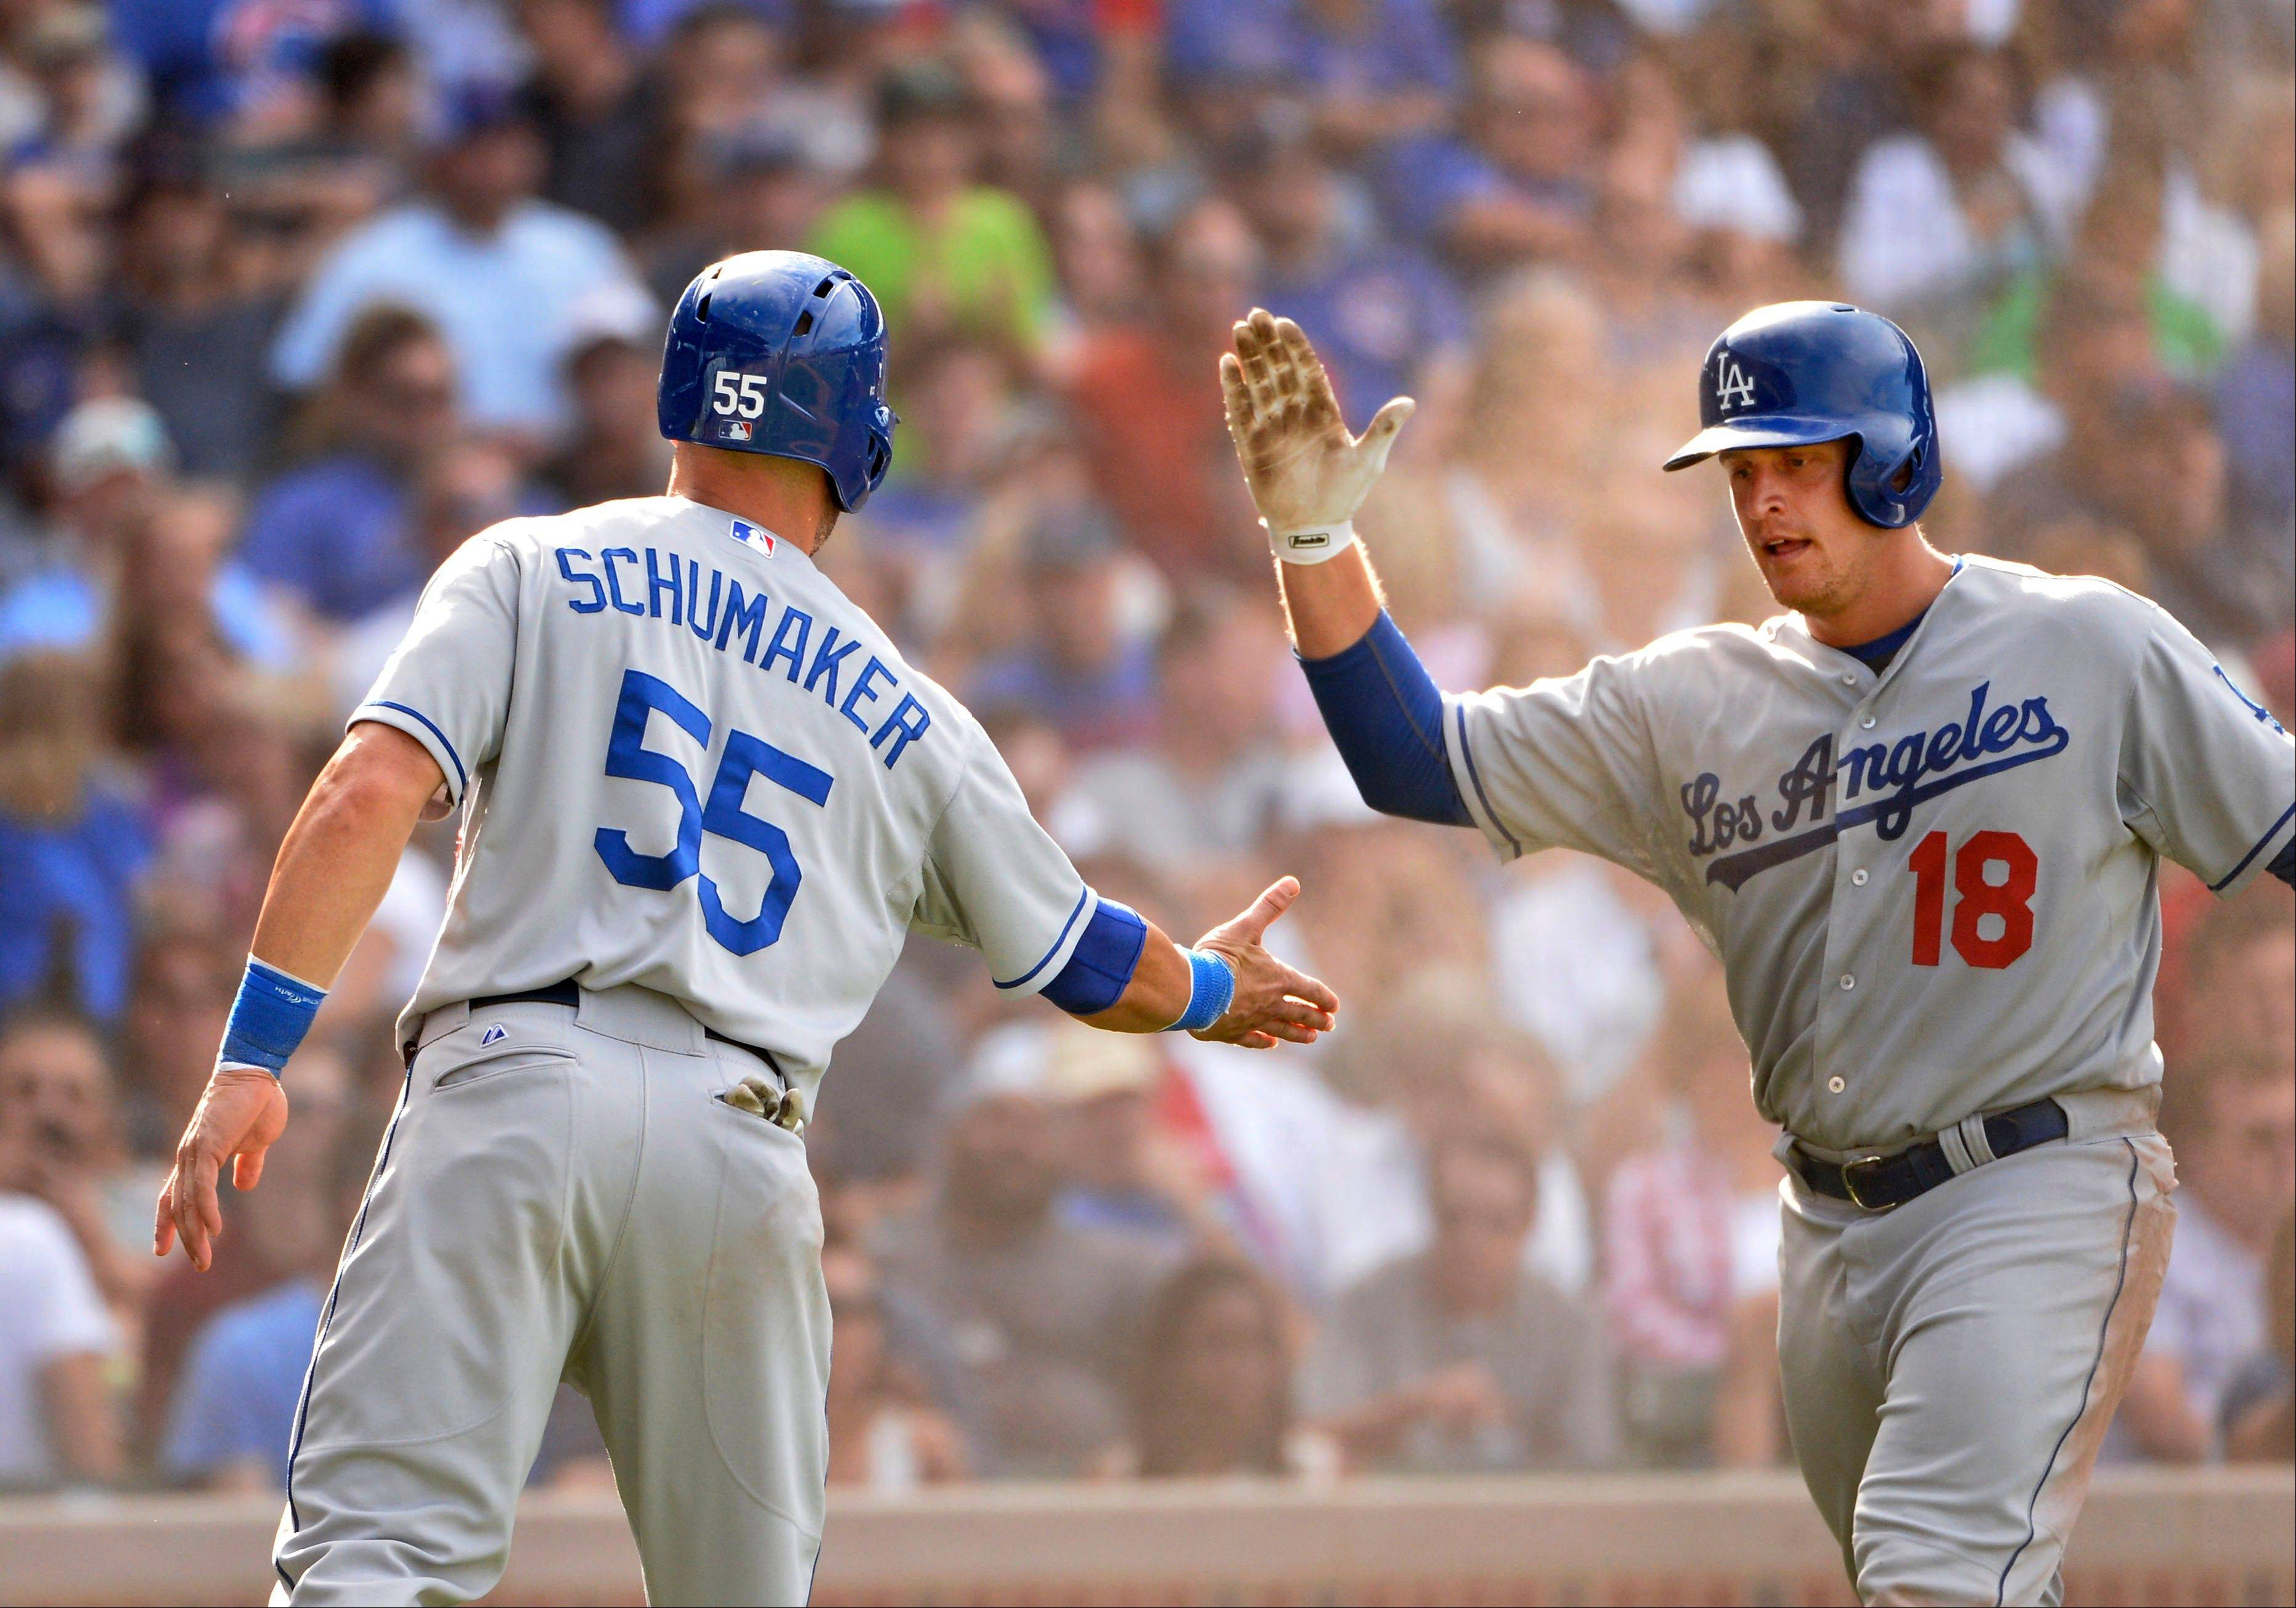 Los Angeles Dodgers' Tim Federowicz high-fives Skip Schumaker (55) after they scored on an RBI single hit by teammate Carl Crawford during the sixth inning of a baseball game against the Chicago Cubs, Saturday, Aug. 3, 2013, in Chicago.